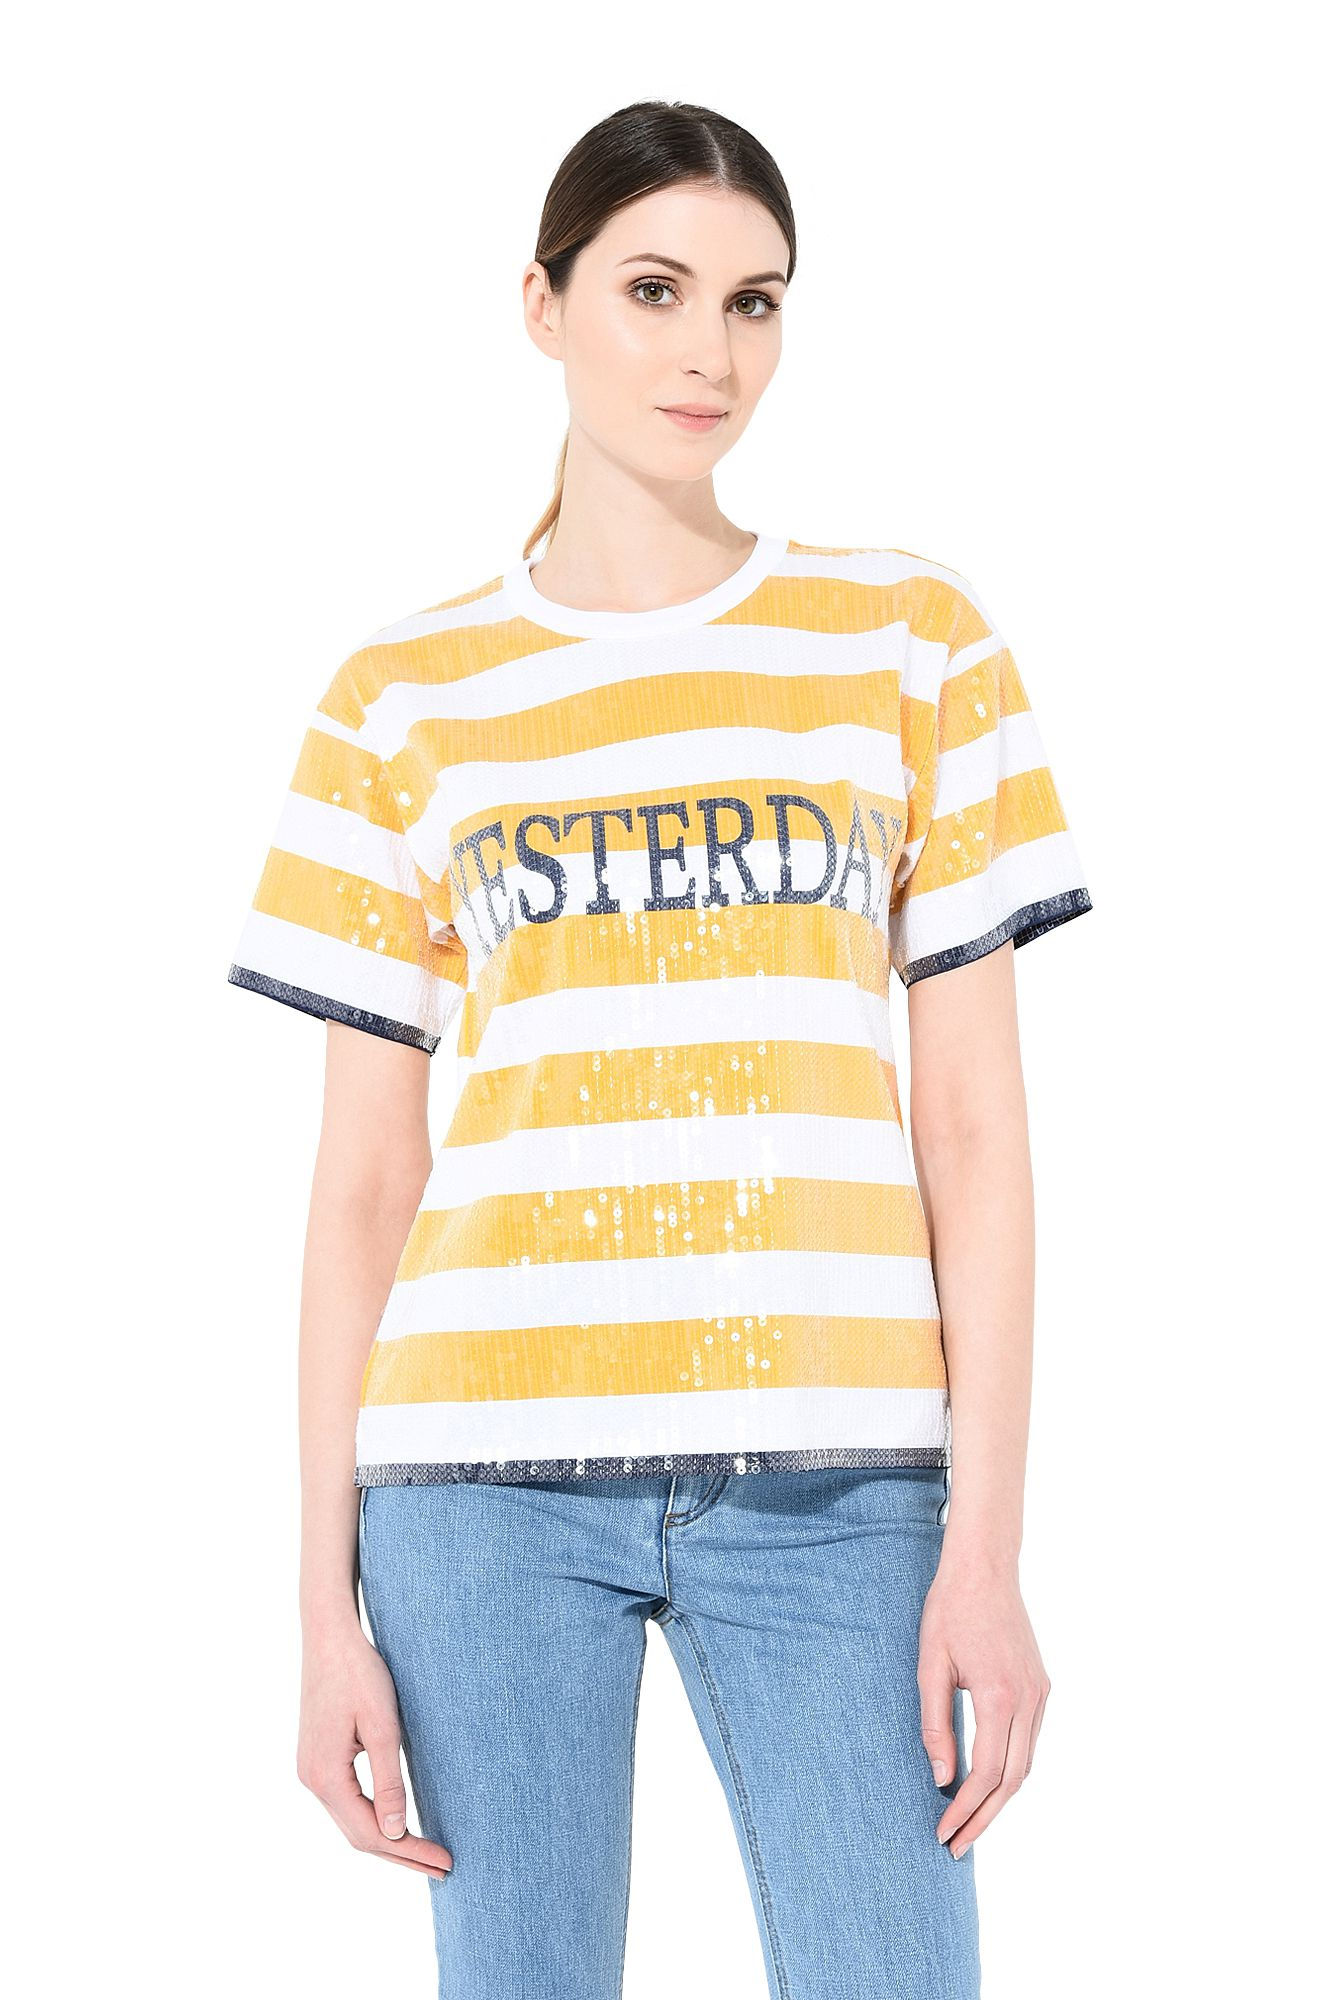 ALBERTA FERRETTI T-shirt Woman Yesterday sequin T-shirt r